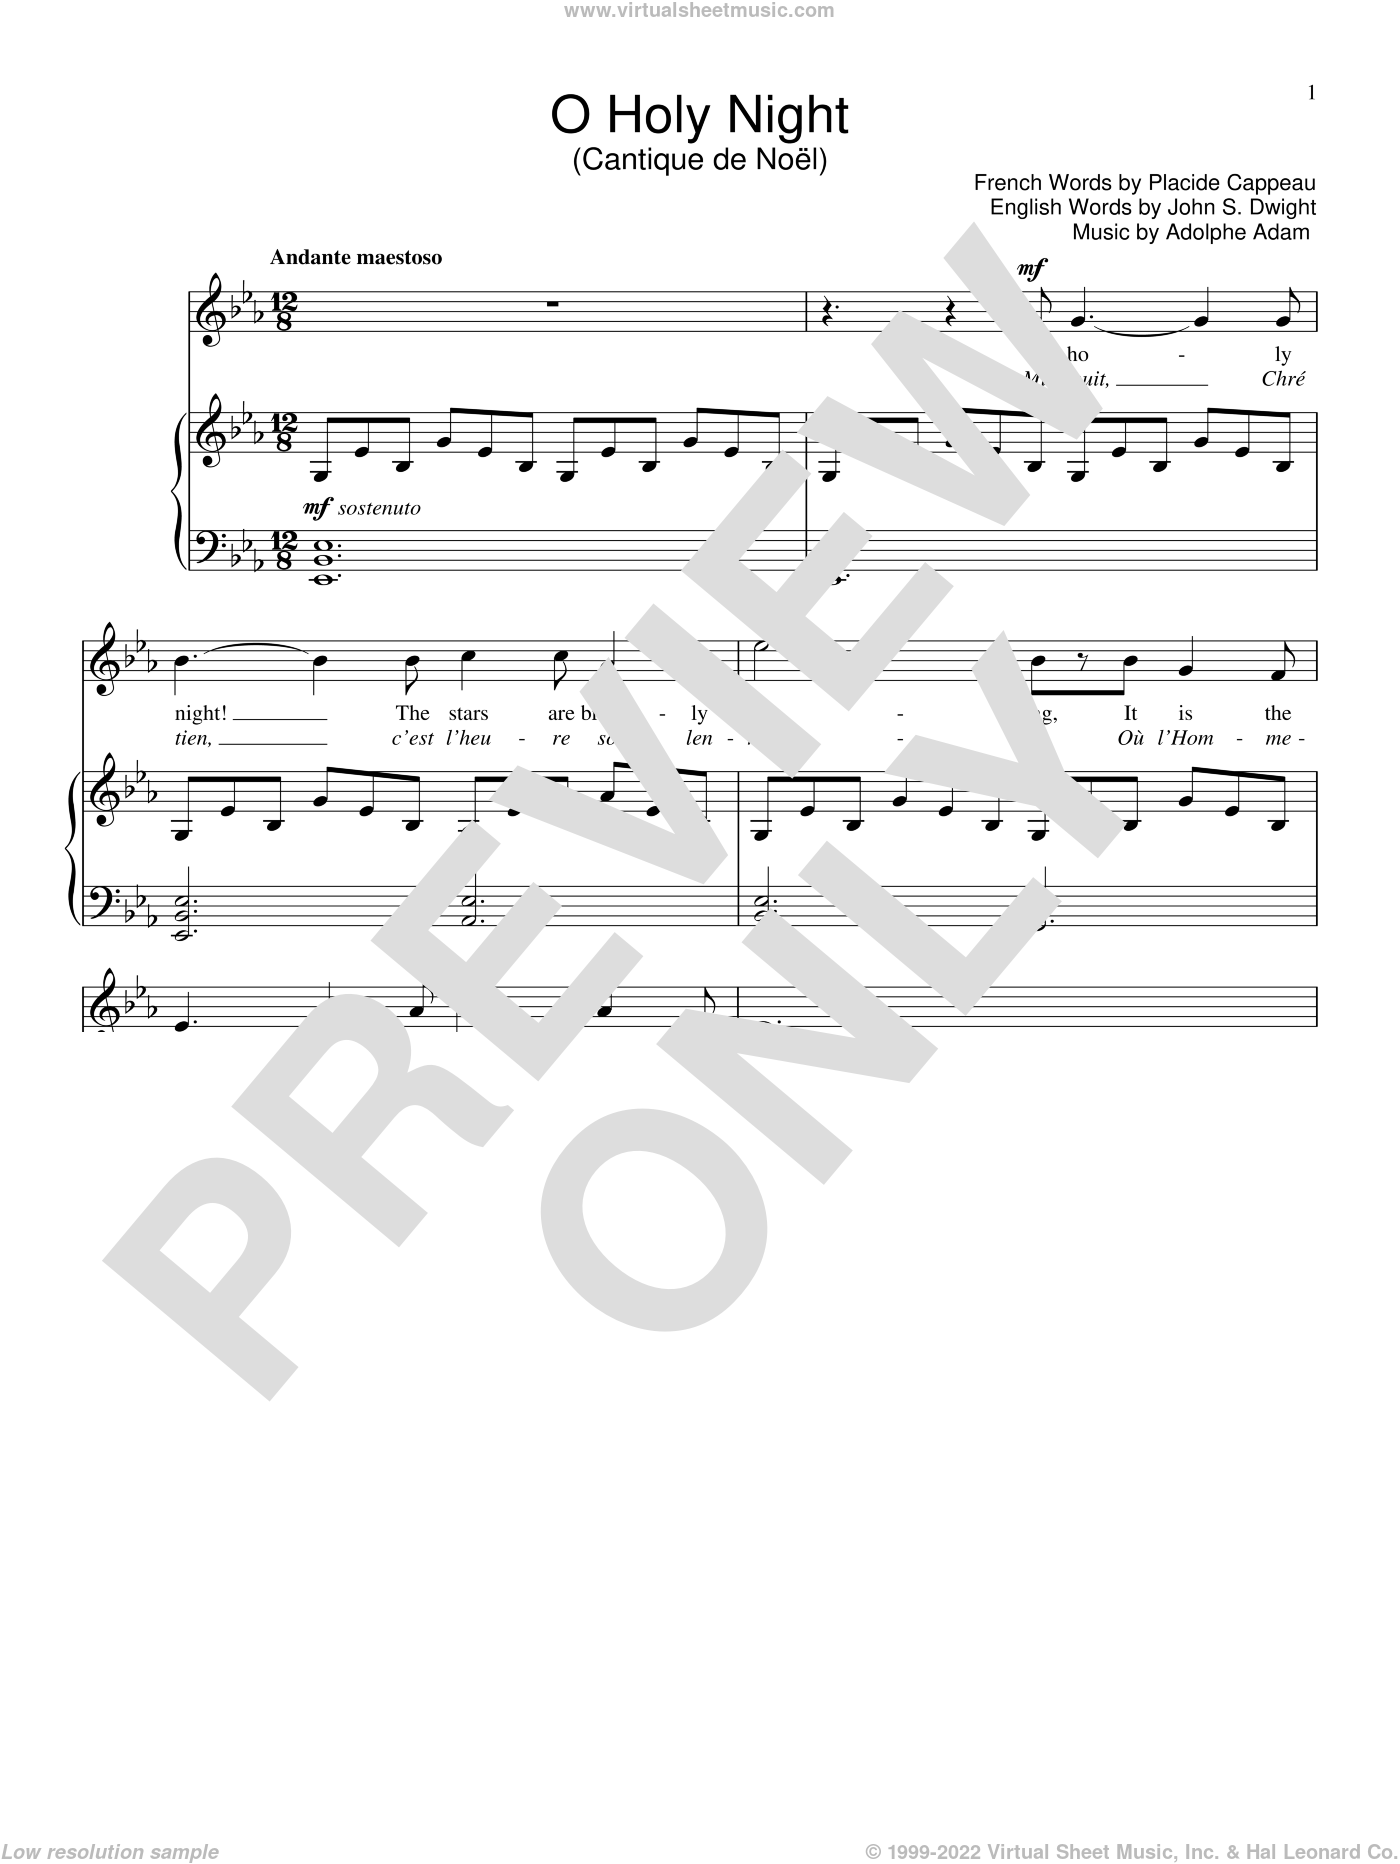 O Holy Night sheet music for voice and piano by Adolphe Adam and John S. Dwight, intermediate. Score Image Preview.